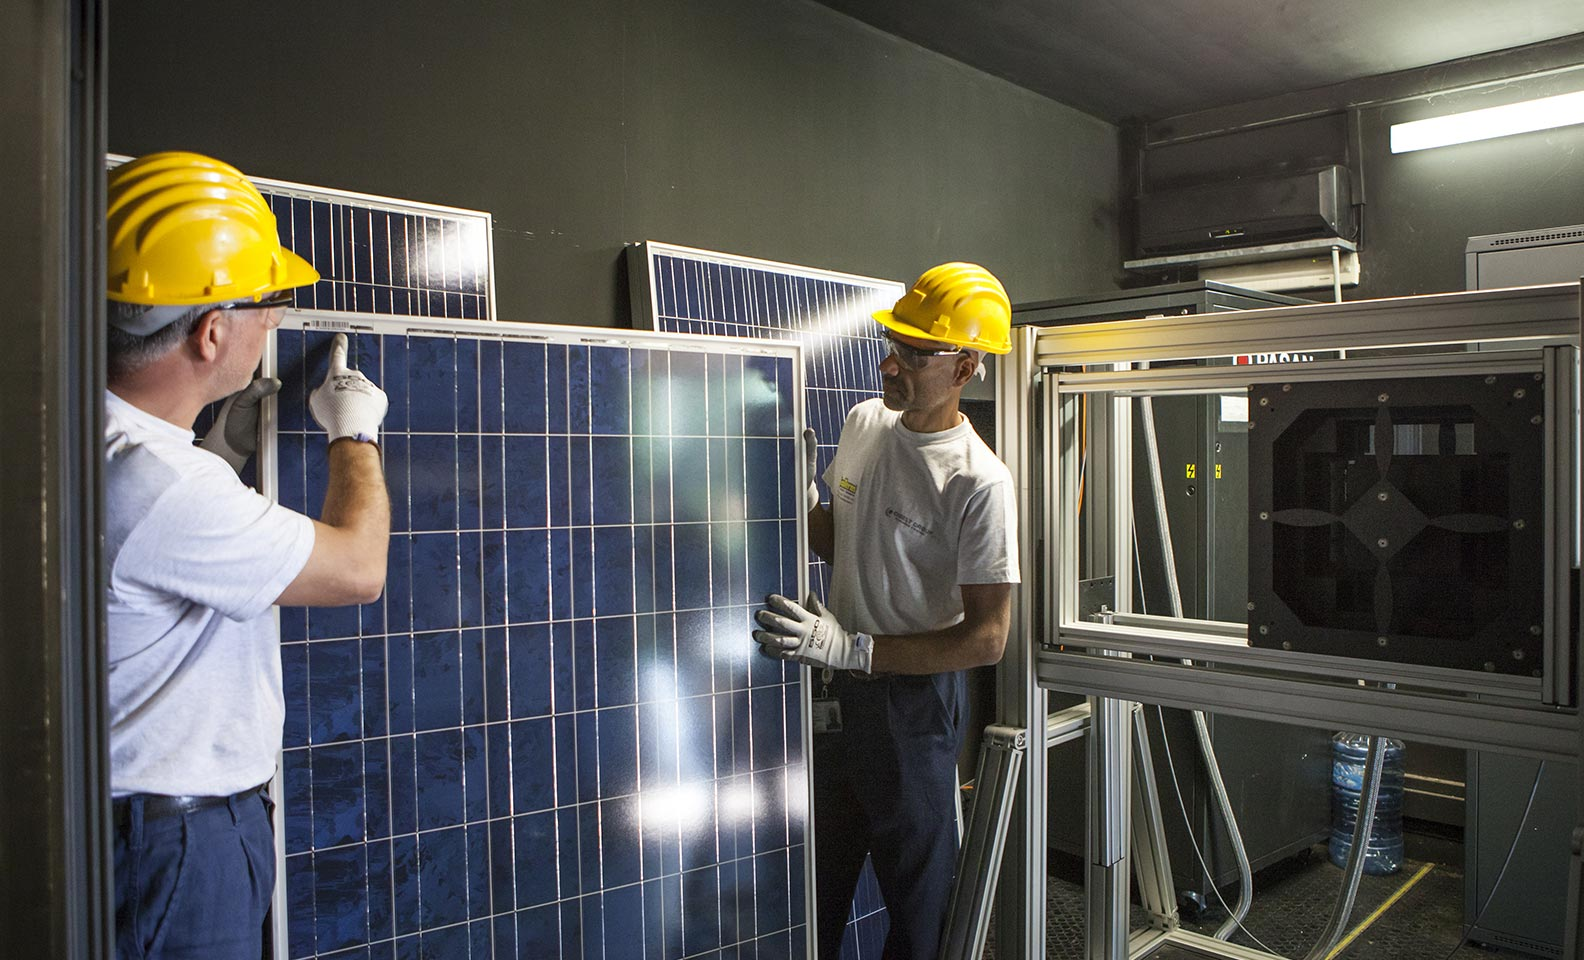 Men in the laboratory with solar panel